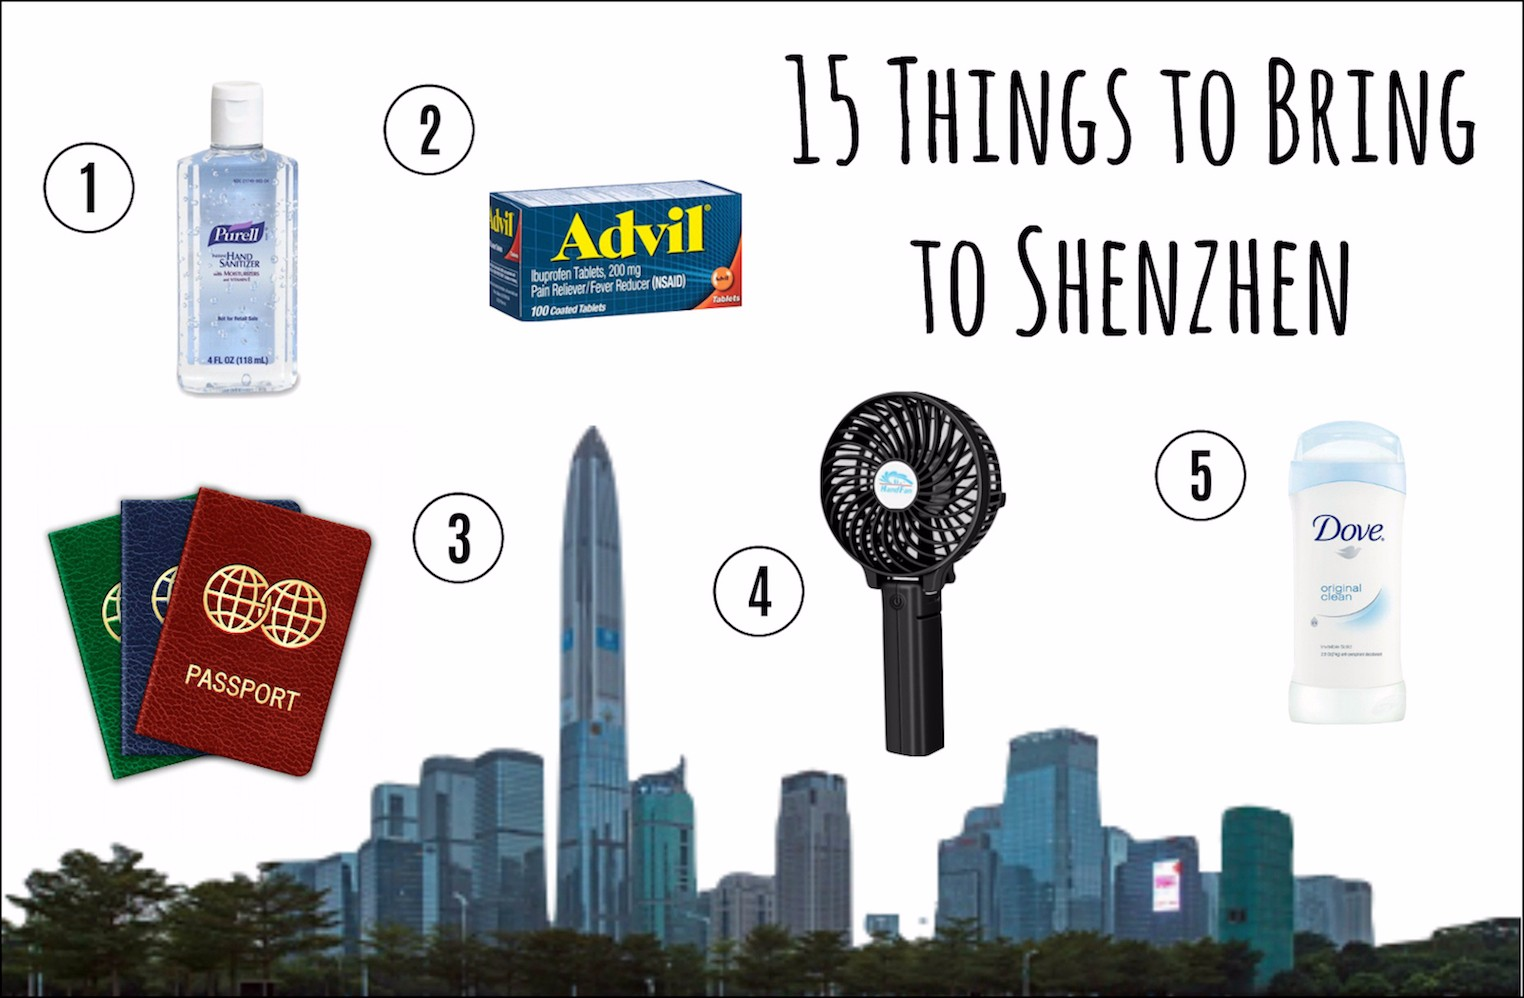 18 Things All Newcomers Absolutely Need to Bring to Shenzhen